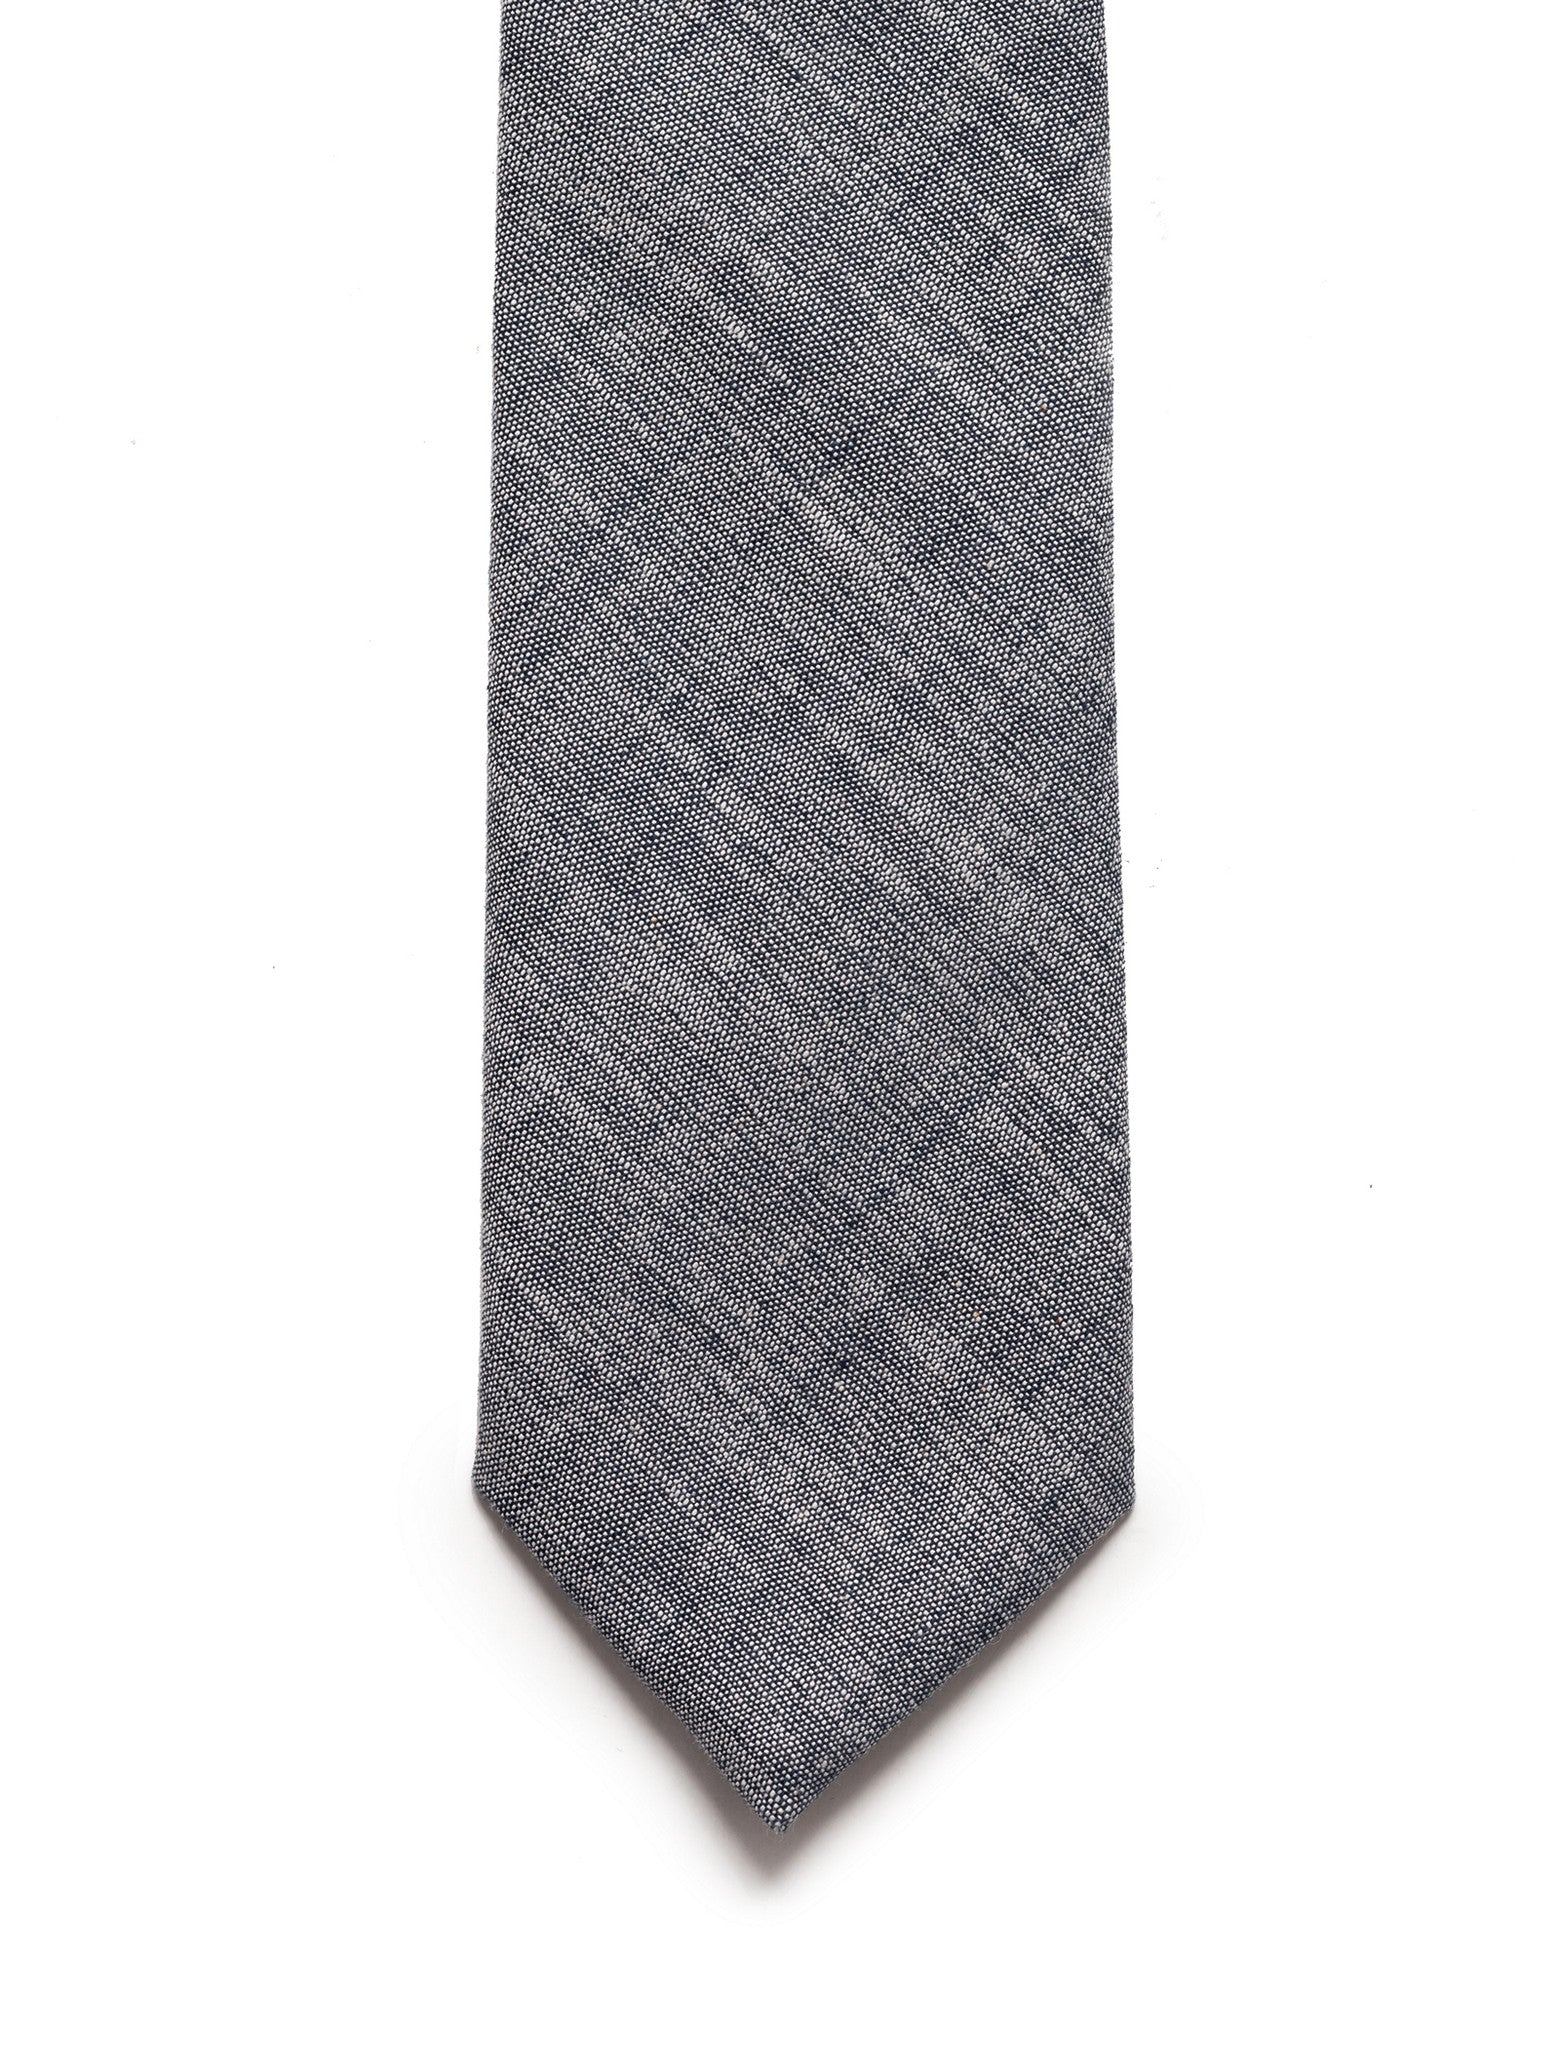 Cotton Tie Navy Chambray